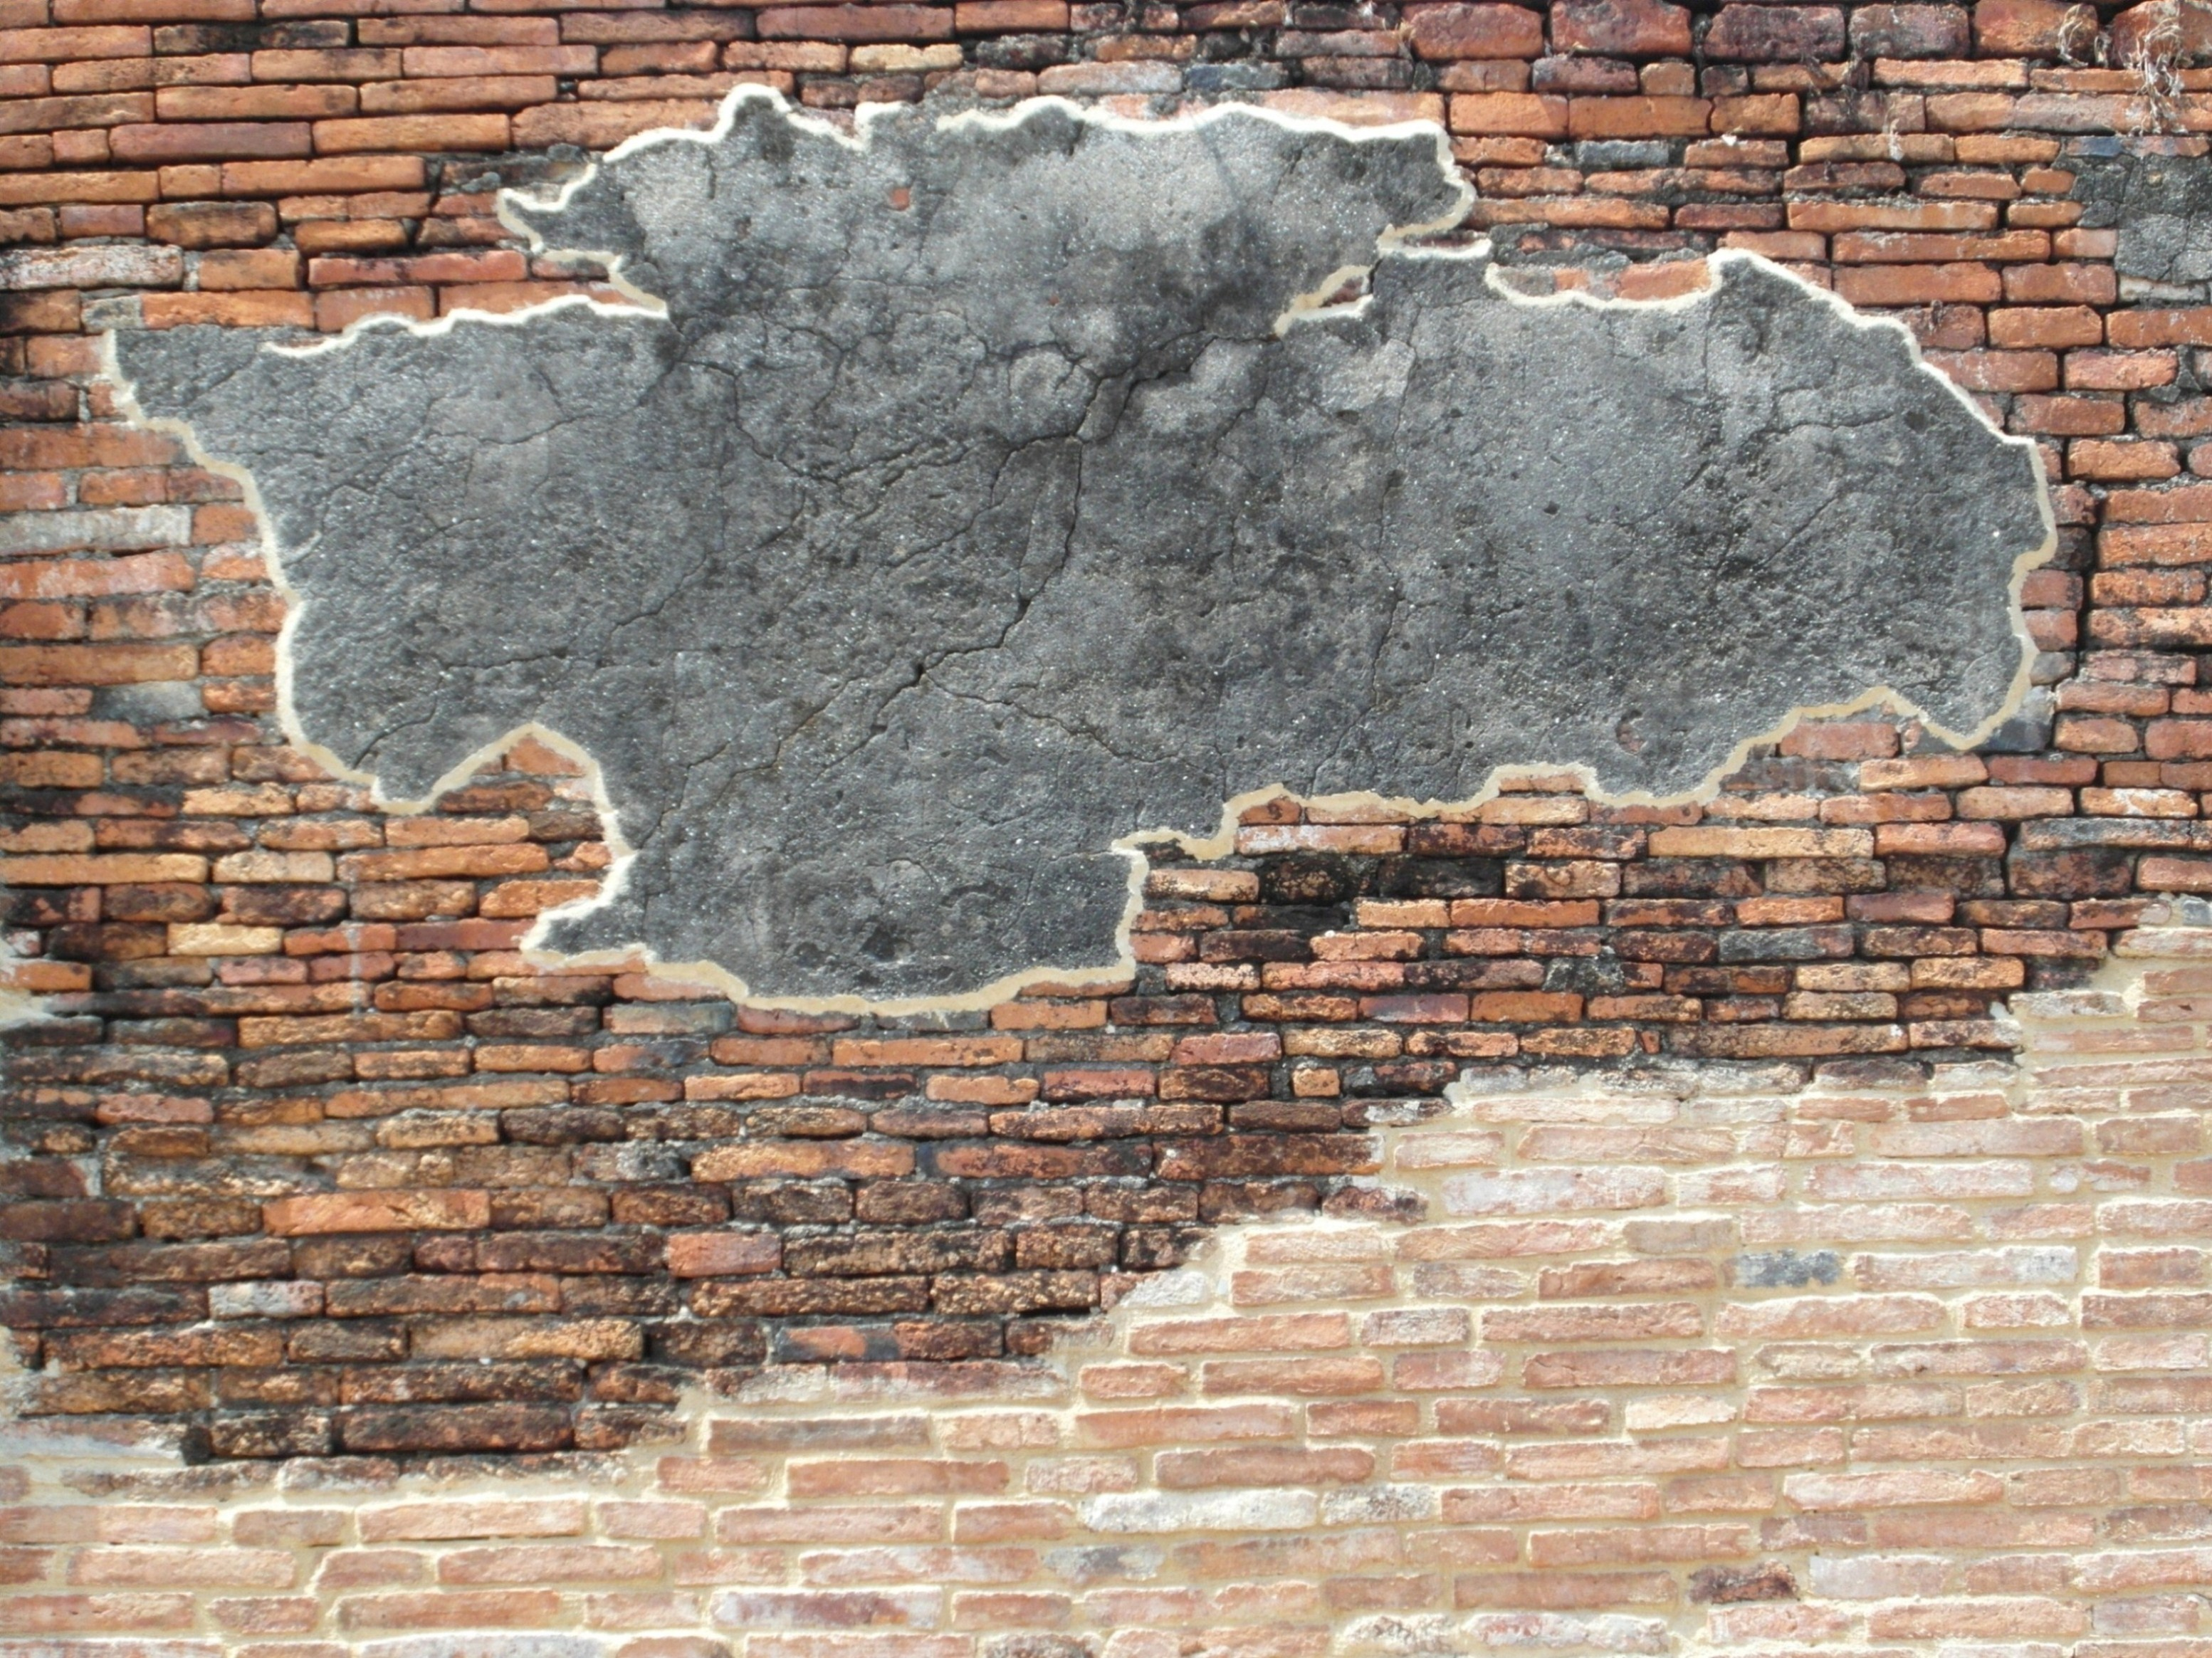 Brick Wall with Blank Concrete Patch, Architectural, Restoration, Old, Patch, HQ Photo